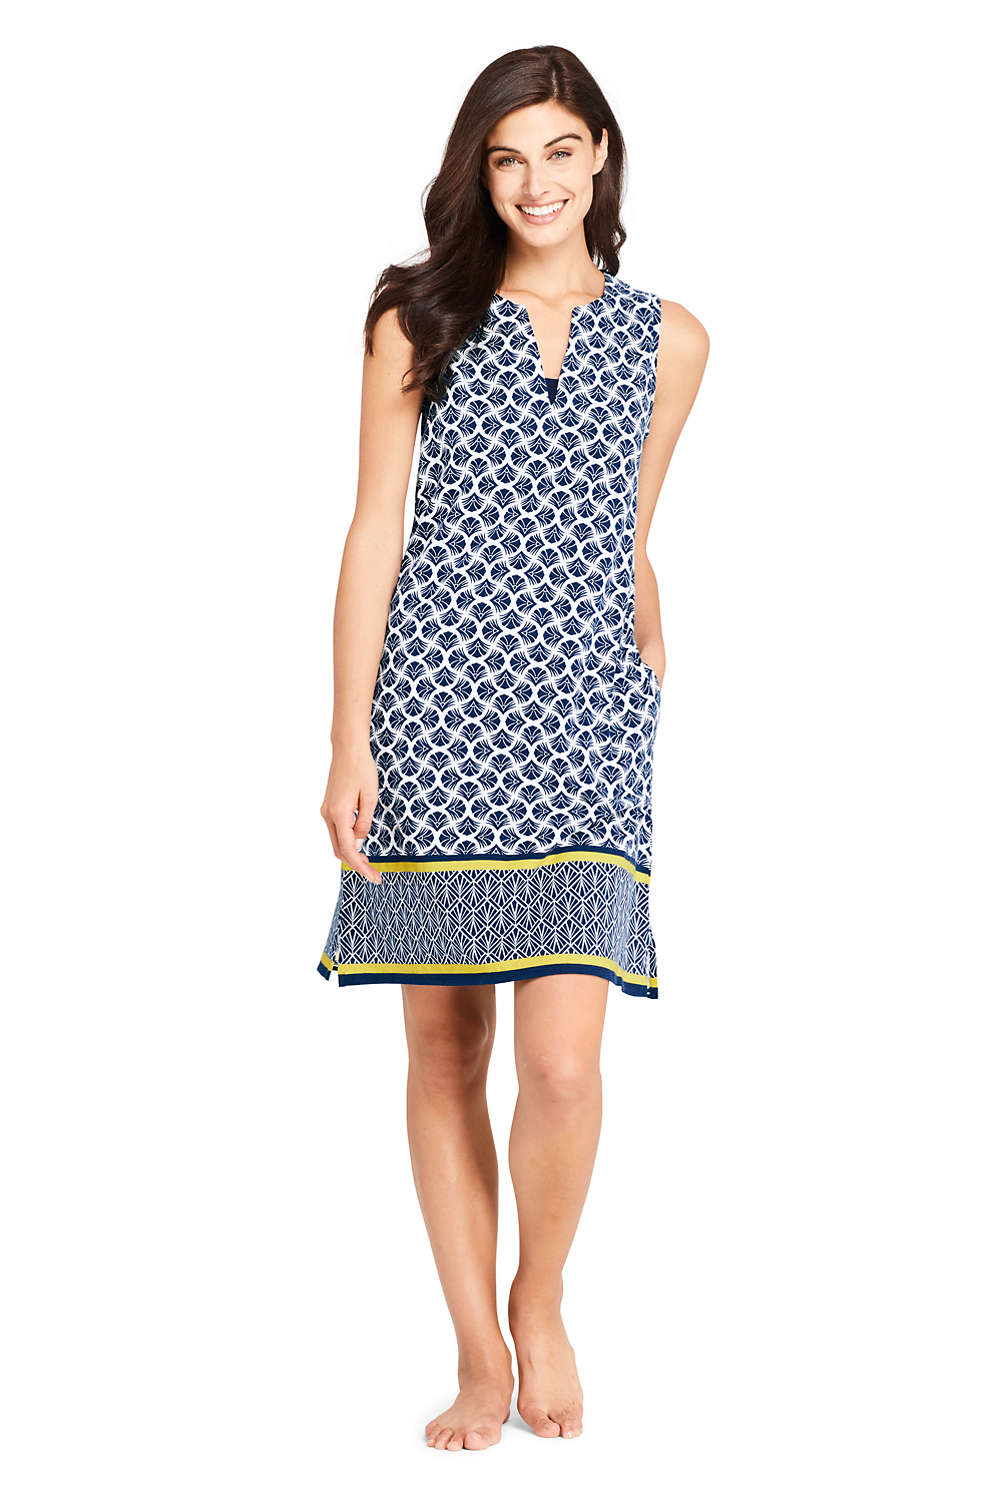 5a288bd4efc Women's Cotton Jersey Sleeveless Tunic Dress Swim Cover-up Print from  Lands' End